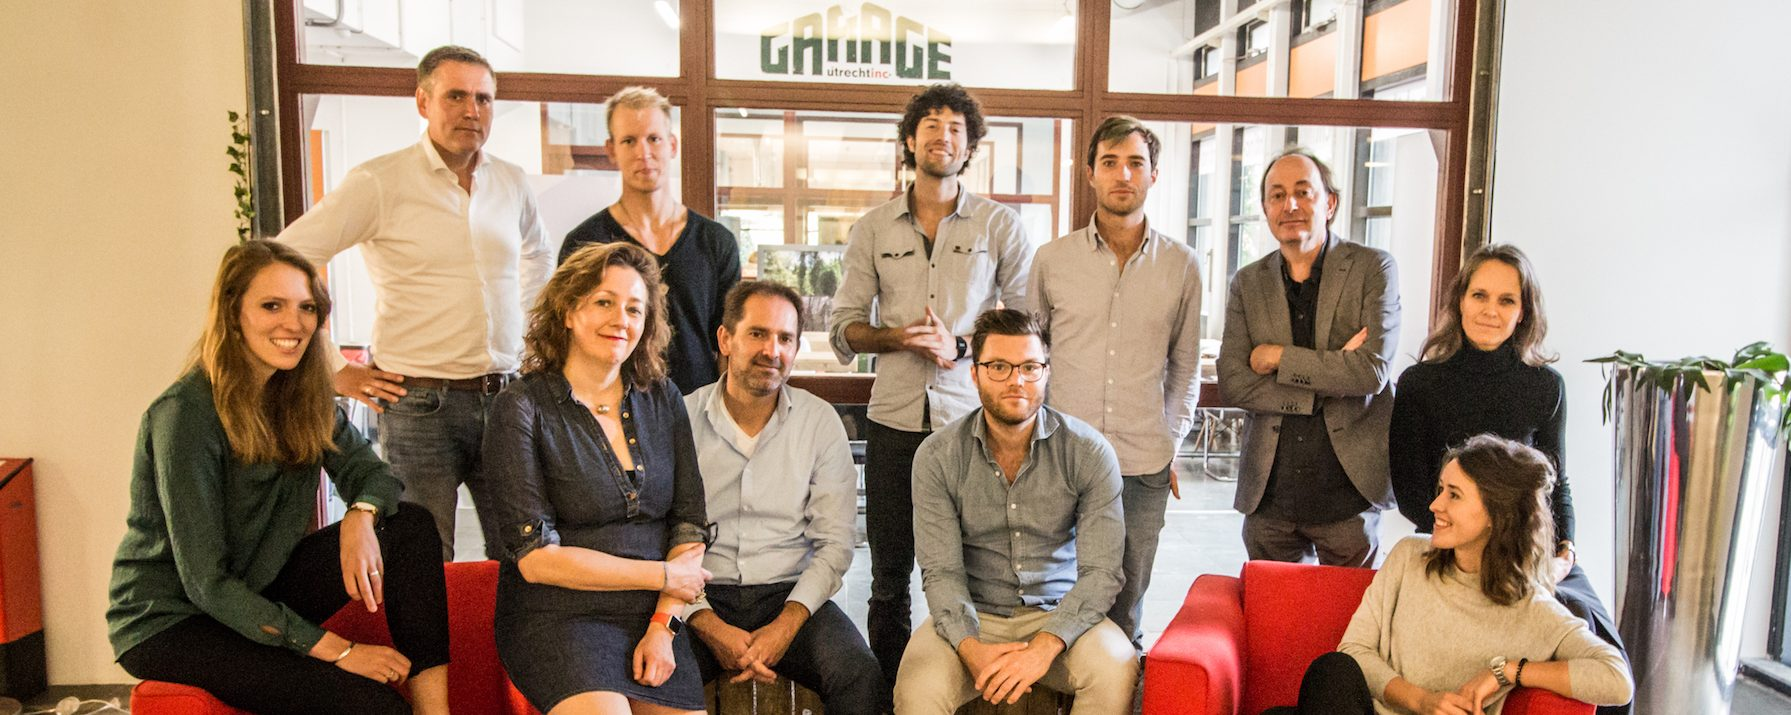 Here are the six new UtrechtInc 'Pressure Cooker' startups